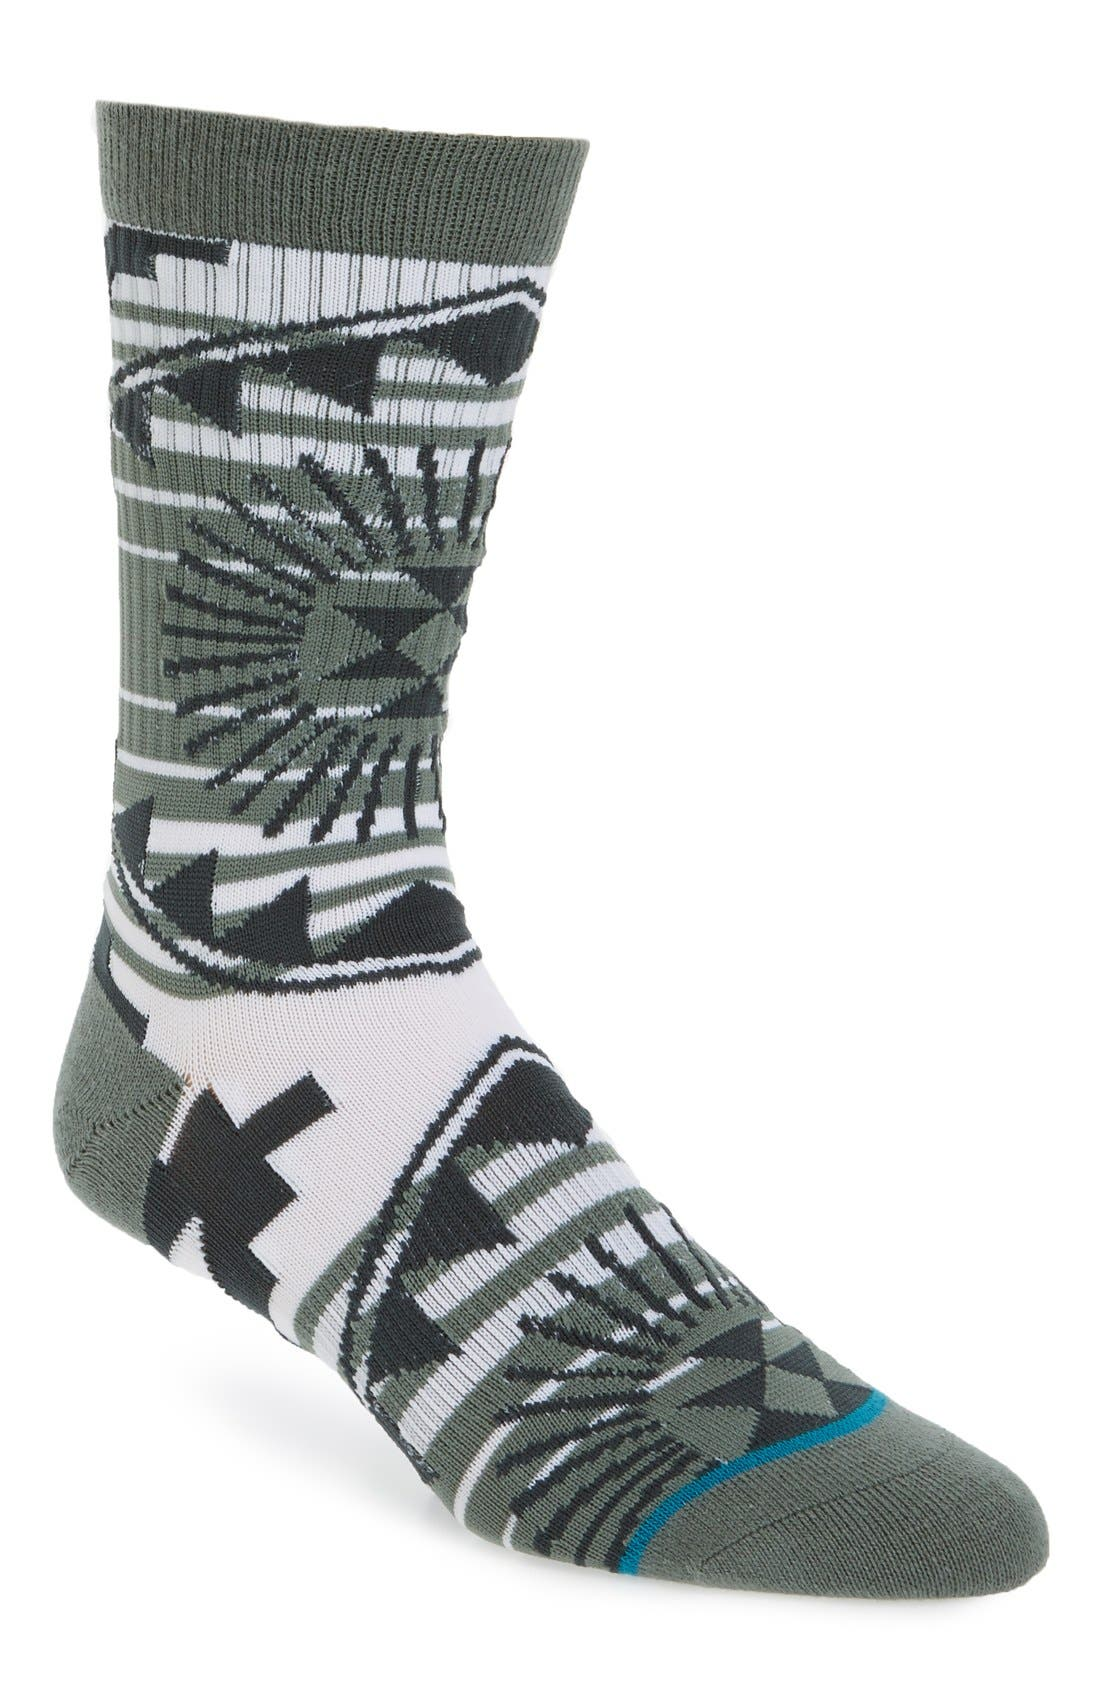 STANCE, Sundrop 2 Crew Socks, Main thumbnail 1, color, 310